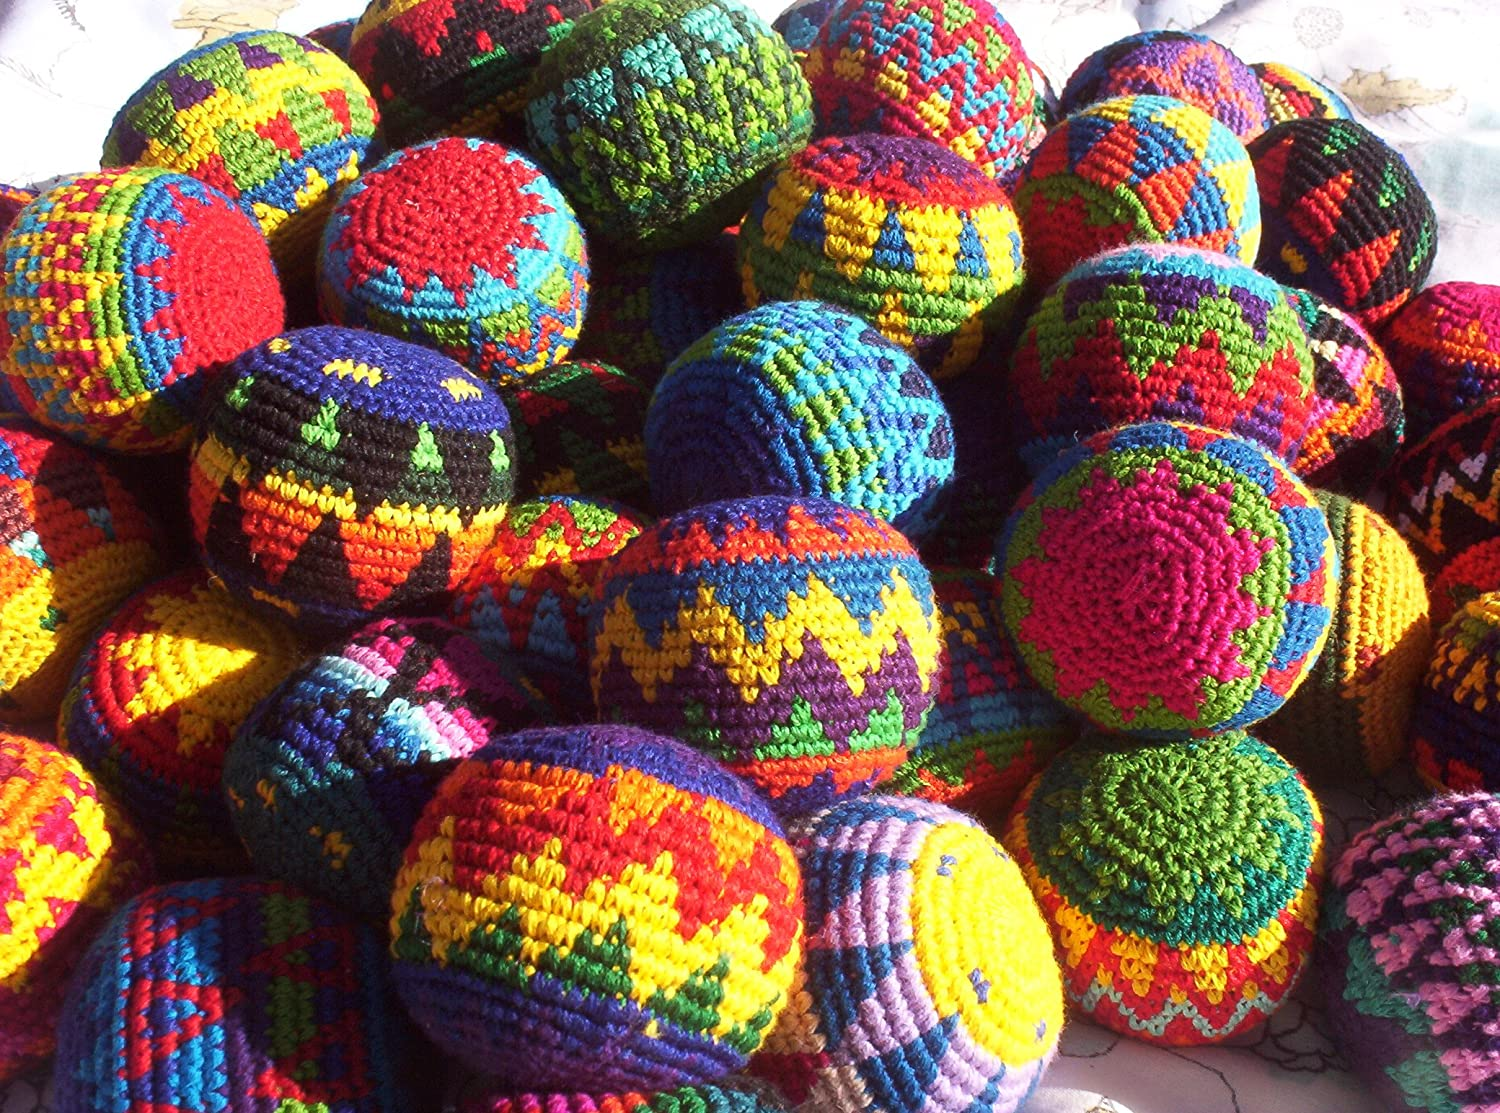 Penny Lane Brand Hacky Sacks Imported from Guatamala фильтры для пылесосов filtero filtero fth 41 lge hepa фильтр для пылесосов lg